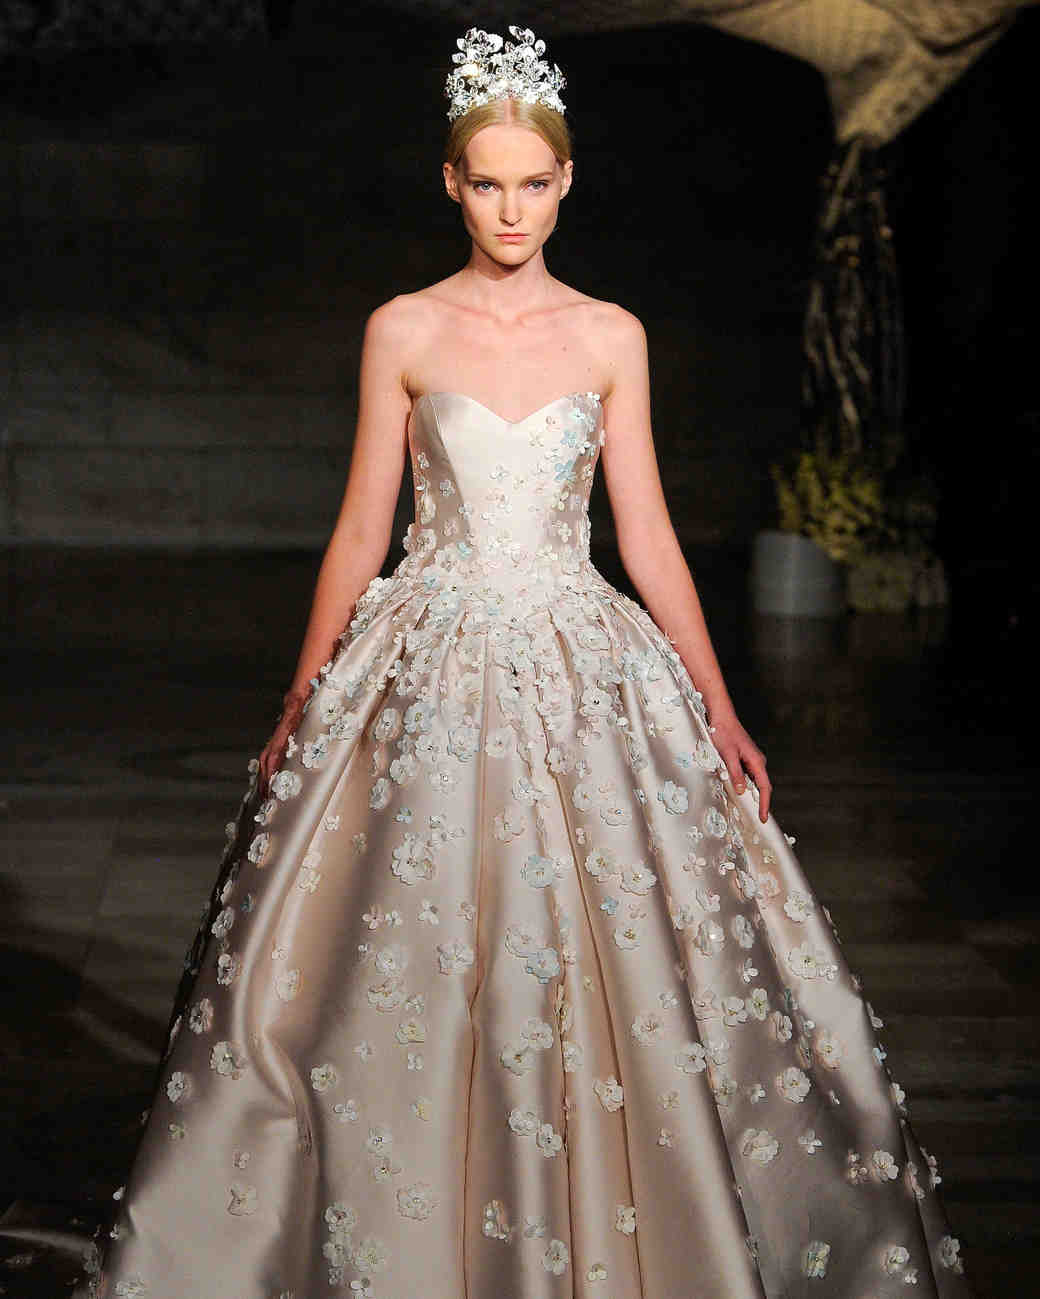 Wedding Dresses: Ultra-Romantic Floral Wedding Dresses